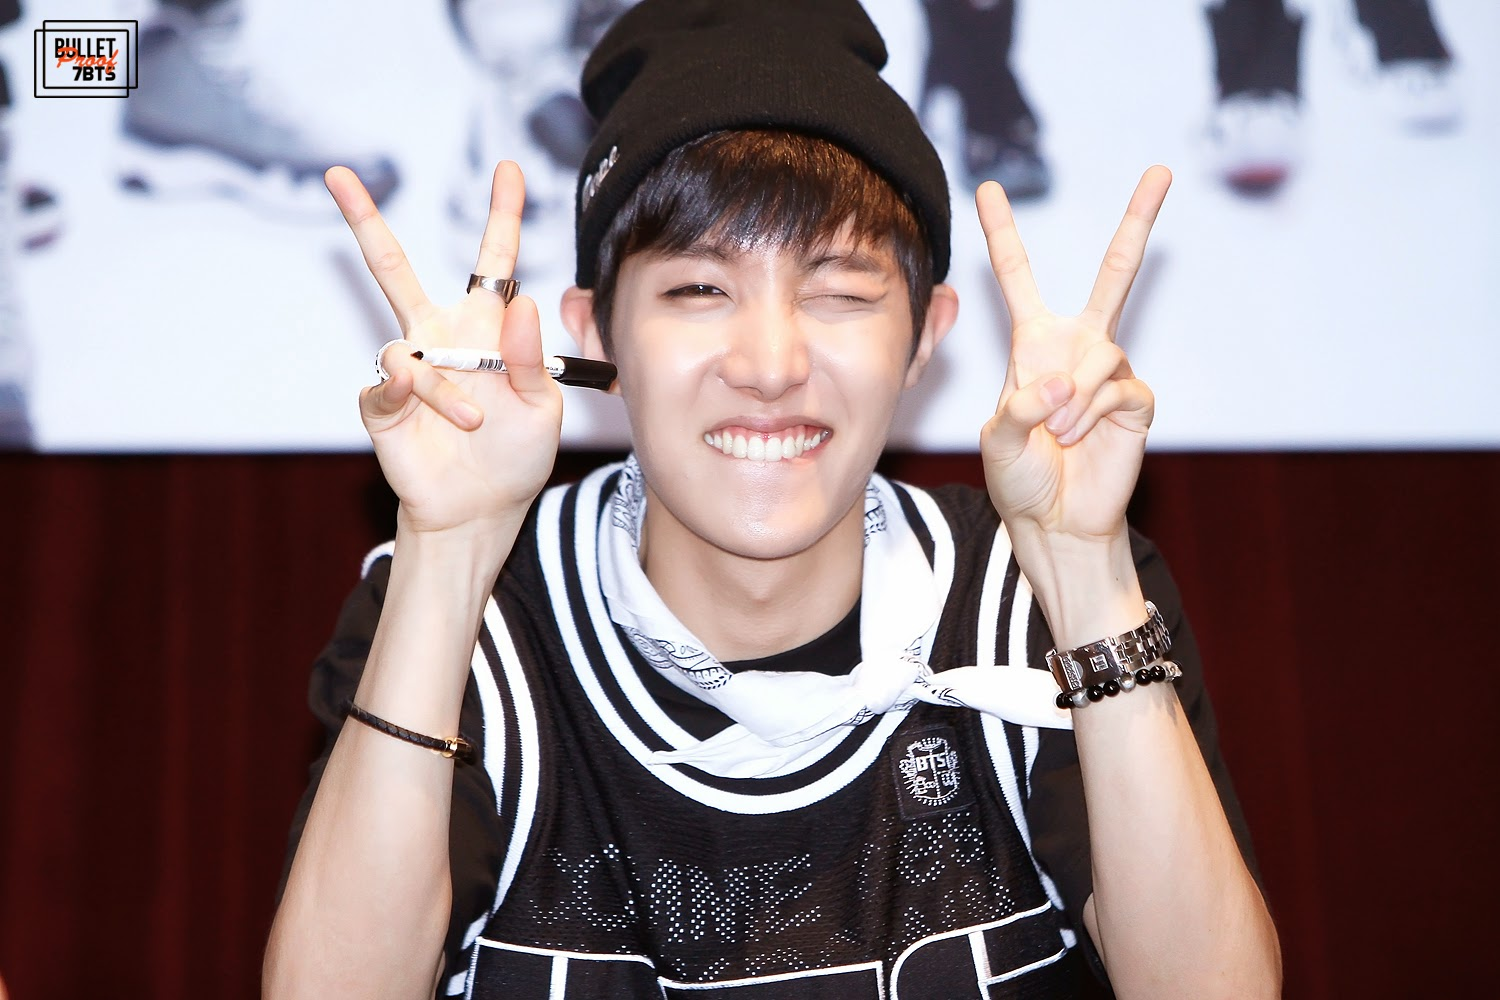 NB Controversy over foreign fans asking JHope to leave BTS - Celebrity News & Gossip - OneHallyu